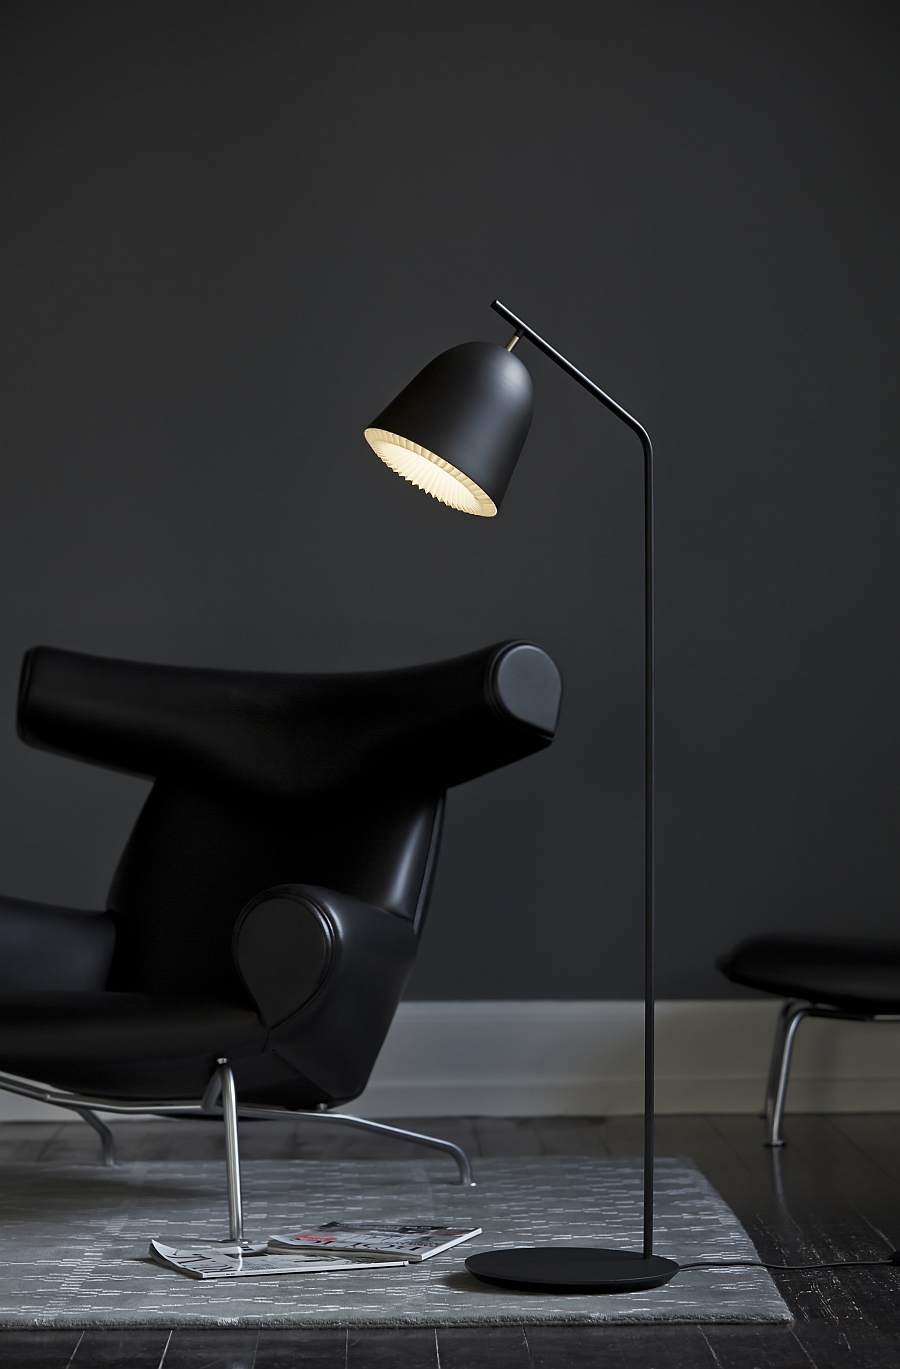 Gorgeous Cache floor lamp from Le Klint in cool black CACHÉ: Le Klint's Urbane Lamp Series Is The Season's Showstopper!